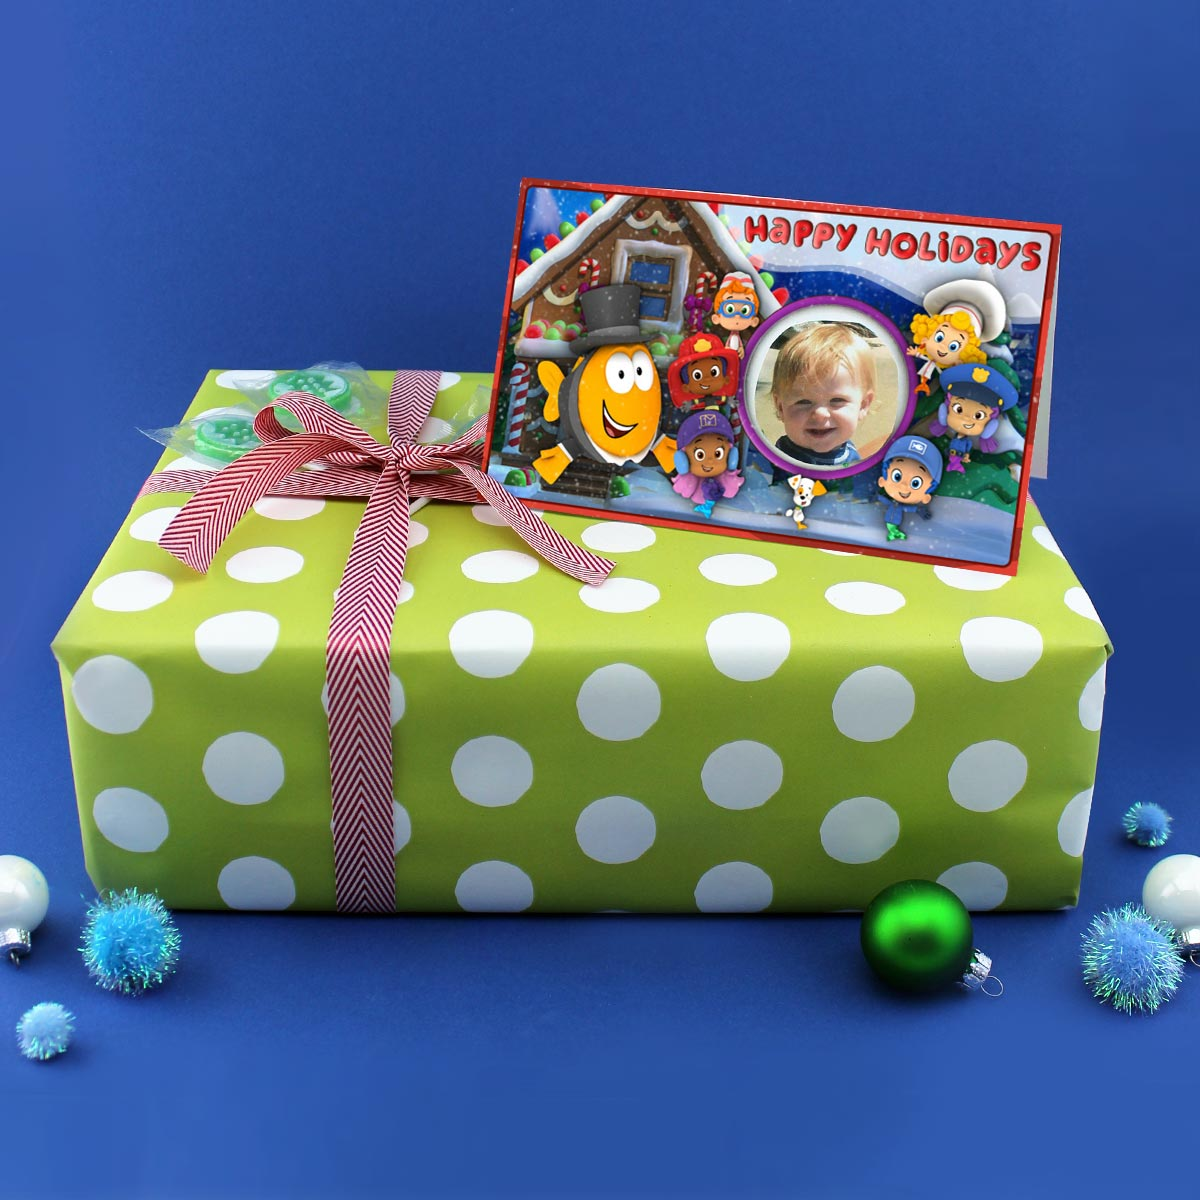 Bubble Guppies Holiday Card